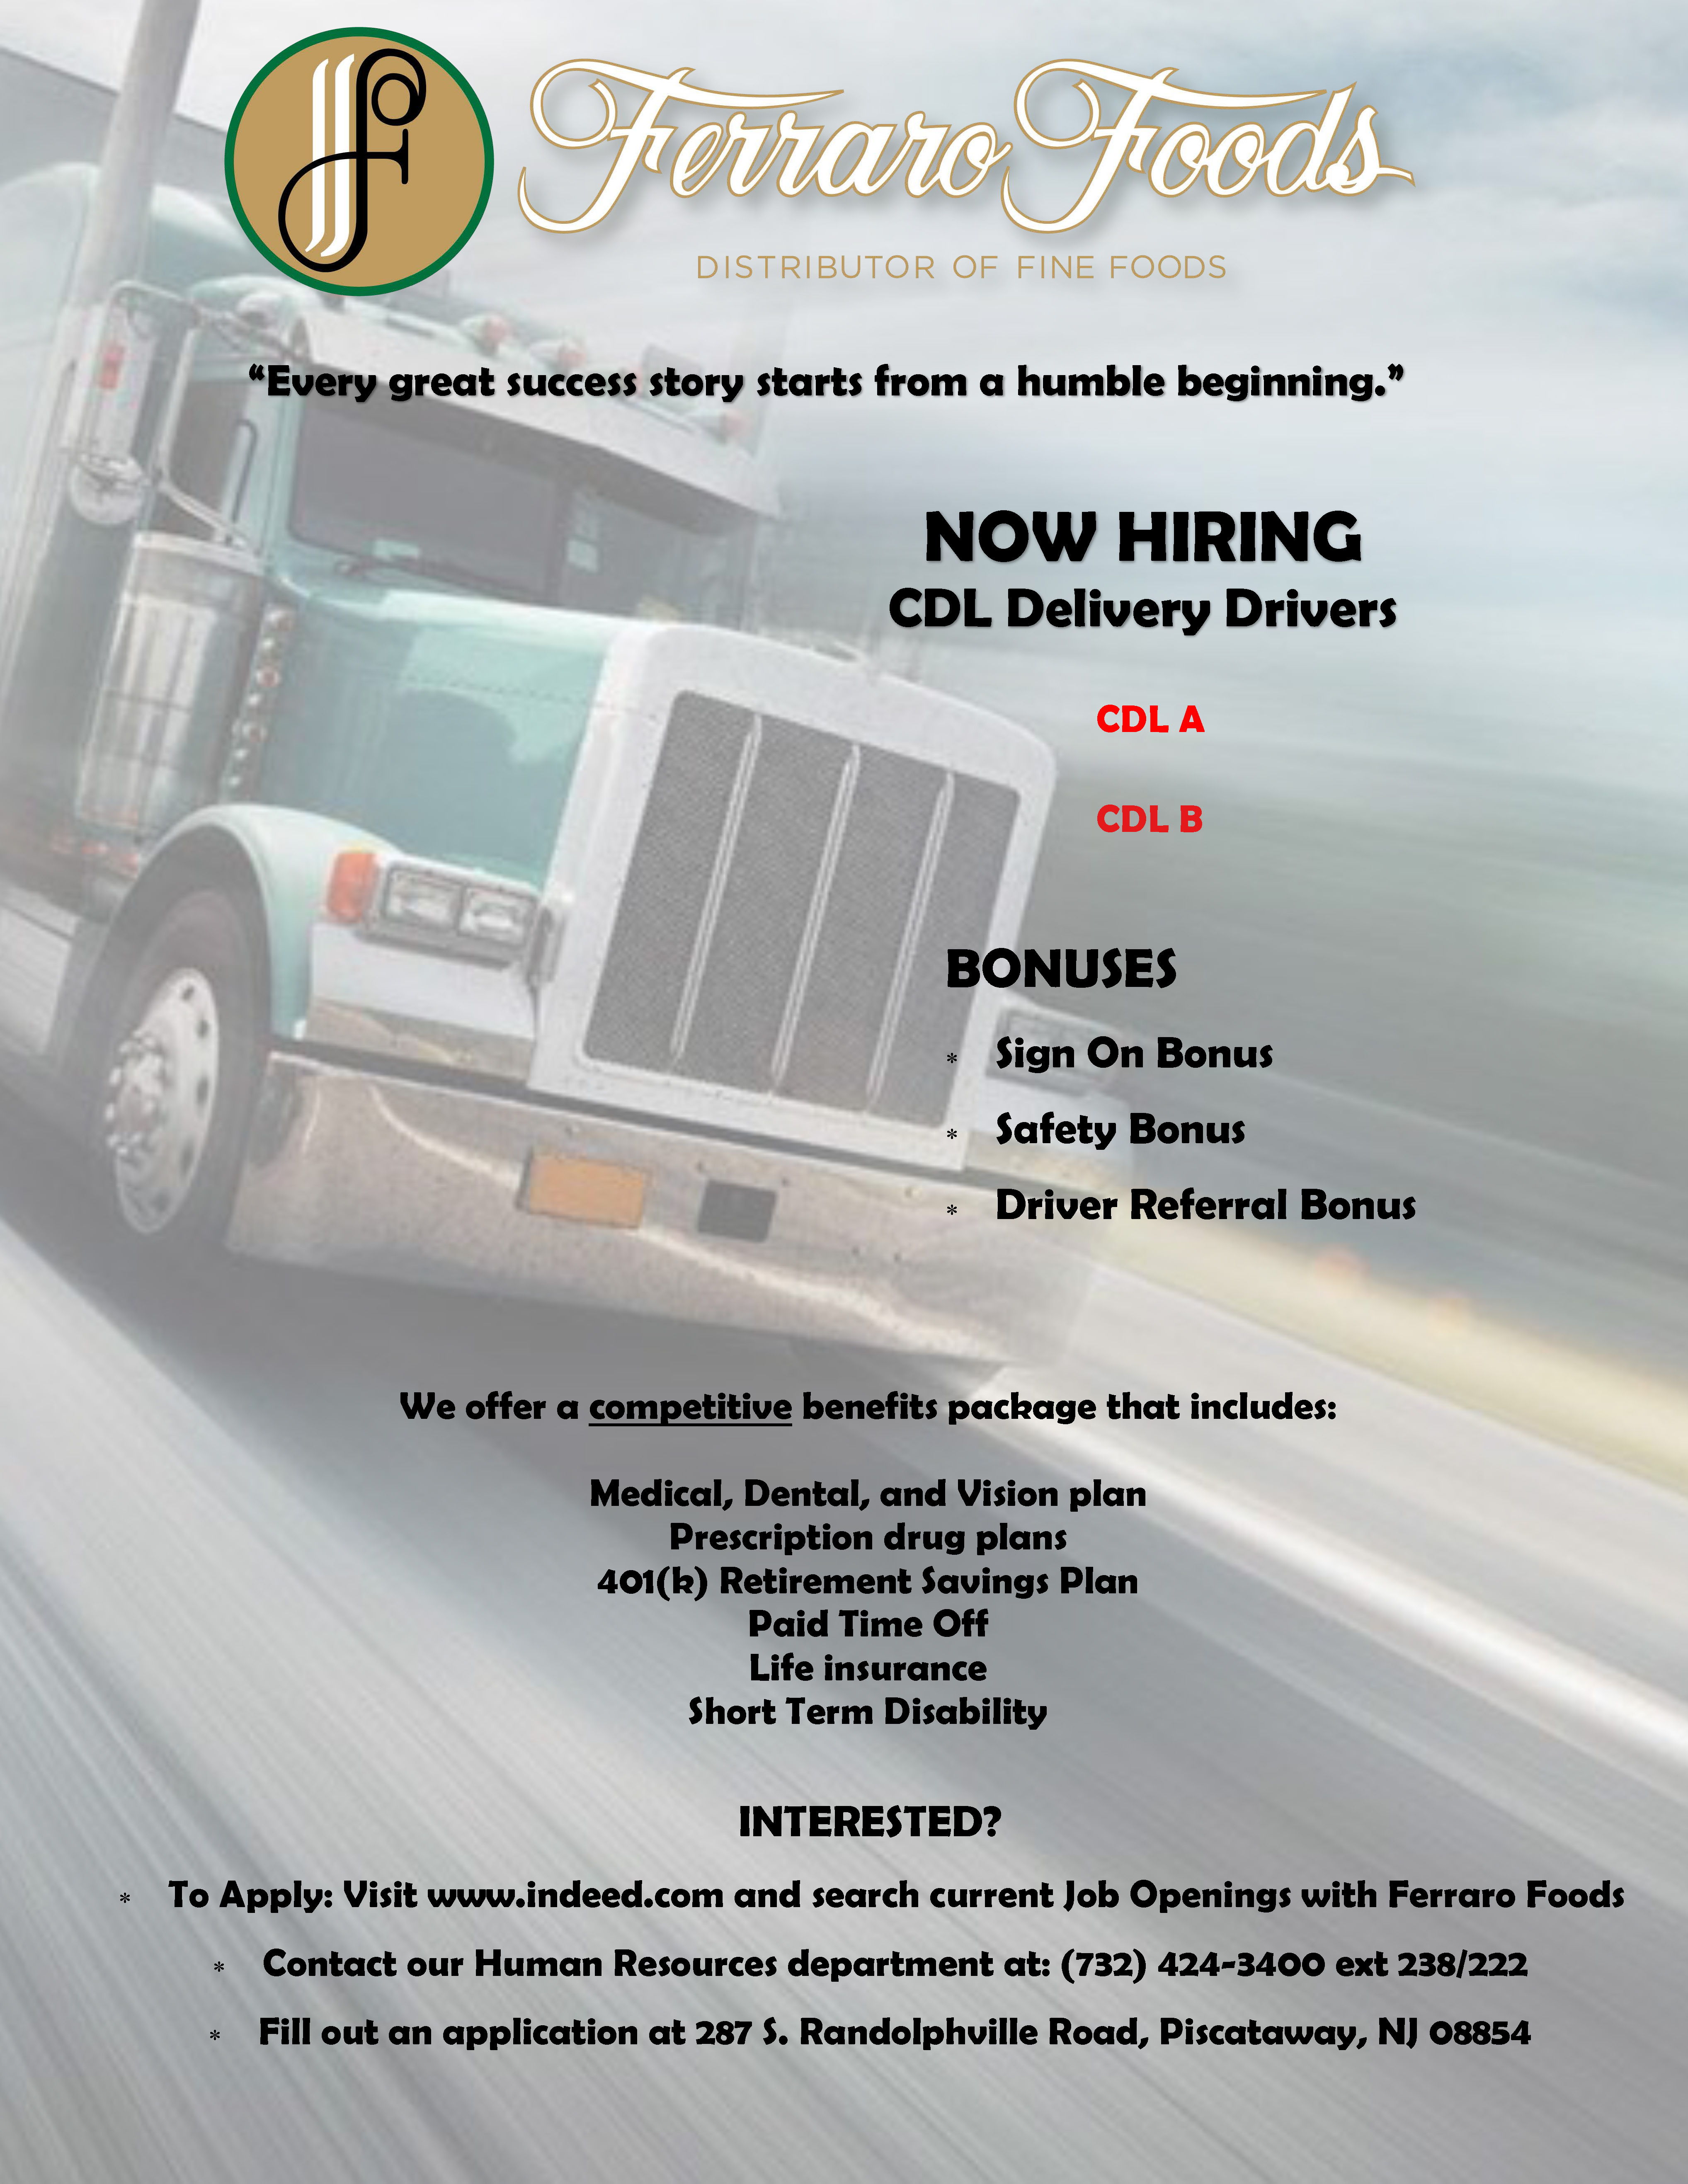 Careers - Join the Ferraro Foods team